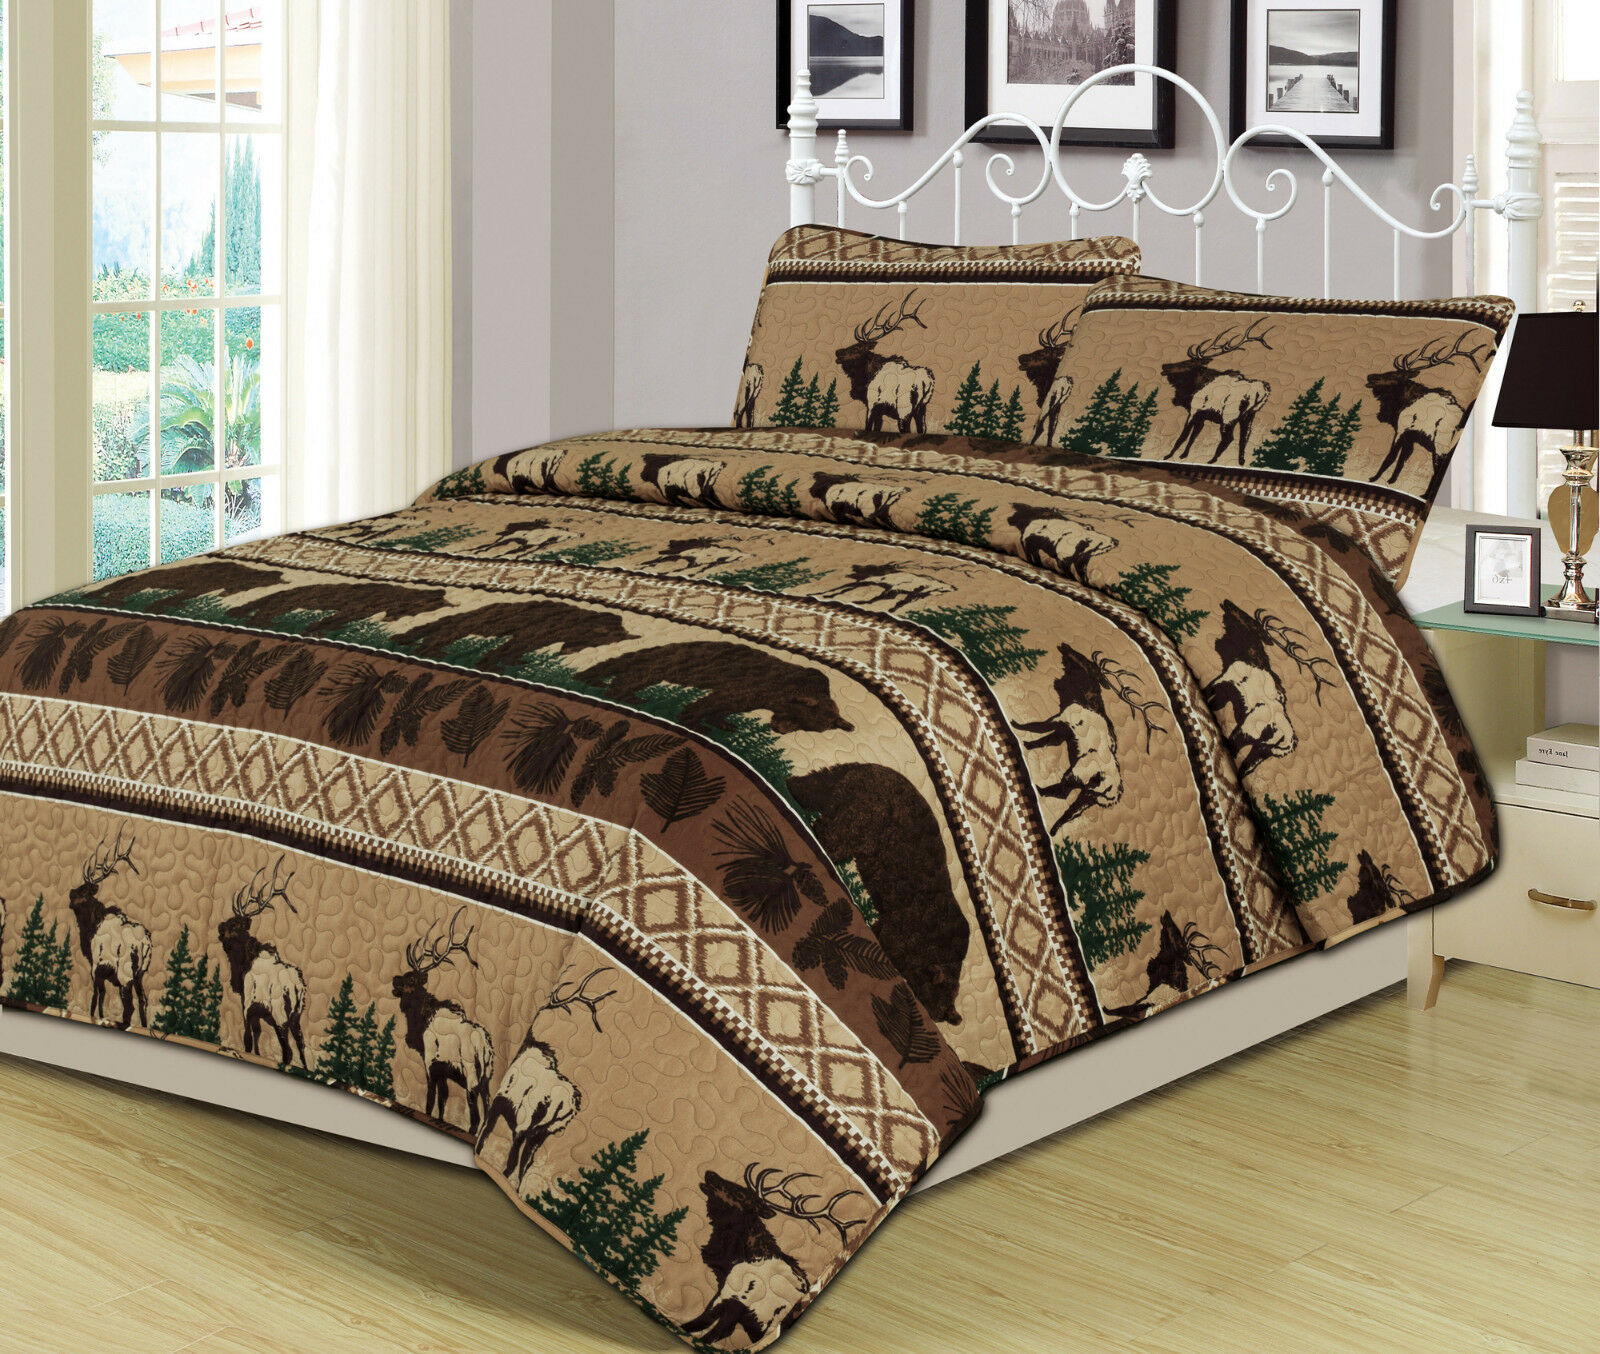 king queen or twin quilt bed set